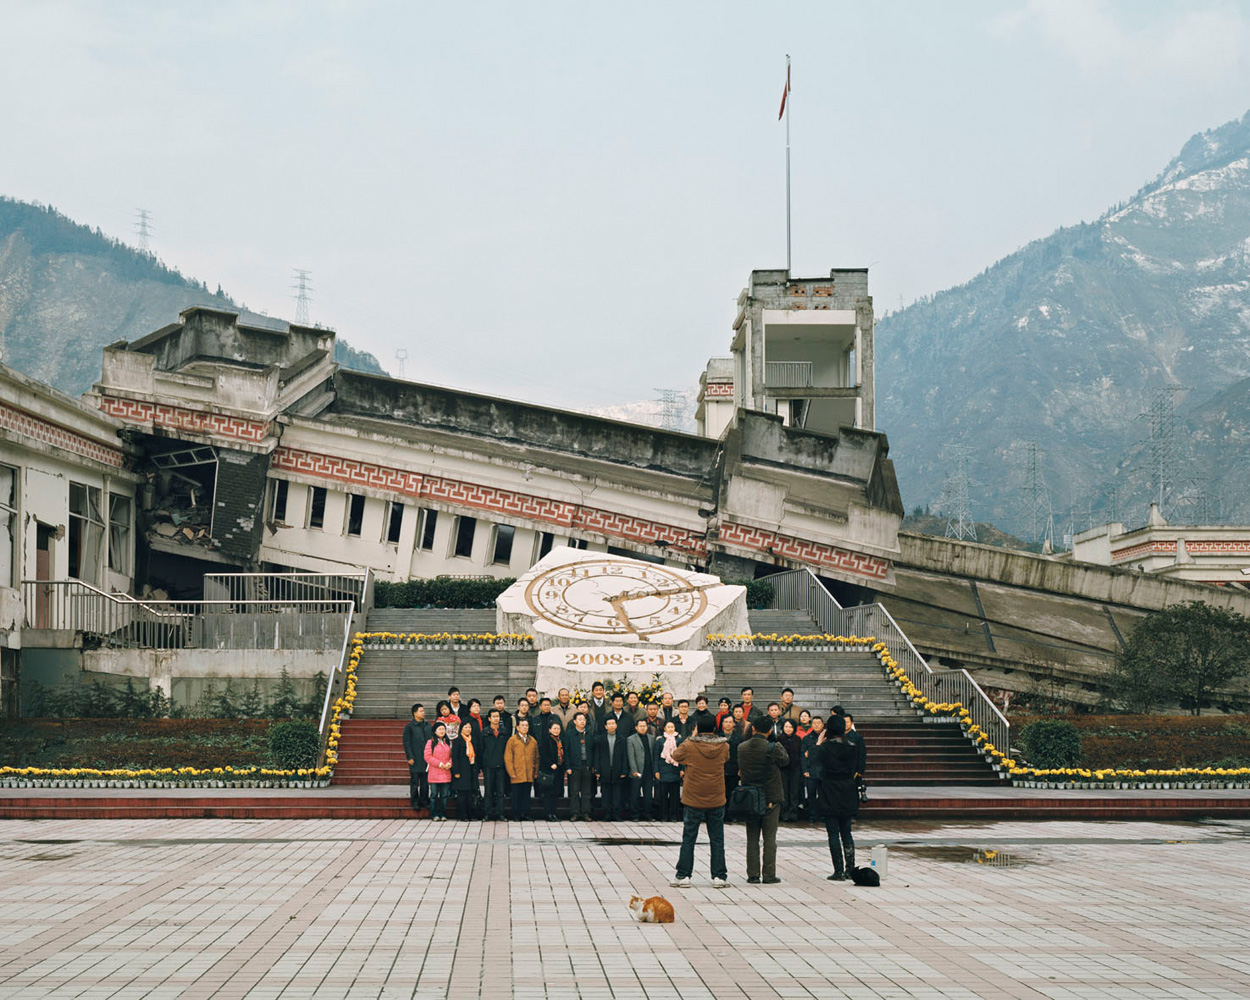 Sichuan Wenchuan earthquake ruins tour – China. 2009.Visitors in front of Xuankou middle school, where over 53 died, and Xuankou grade school, where about 250 died.